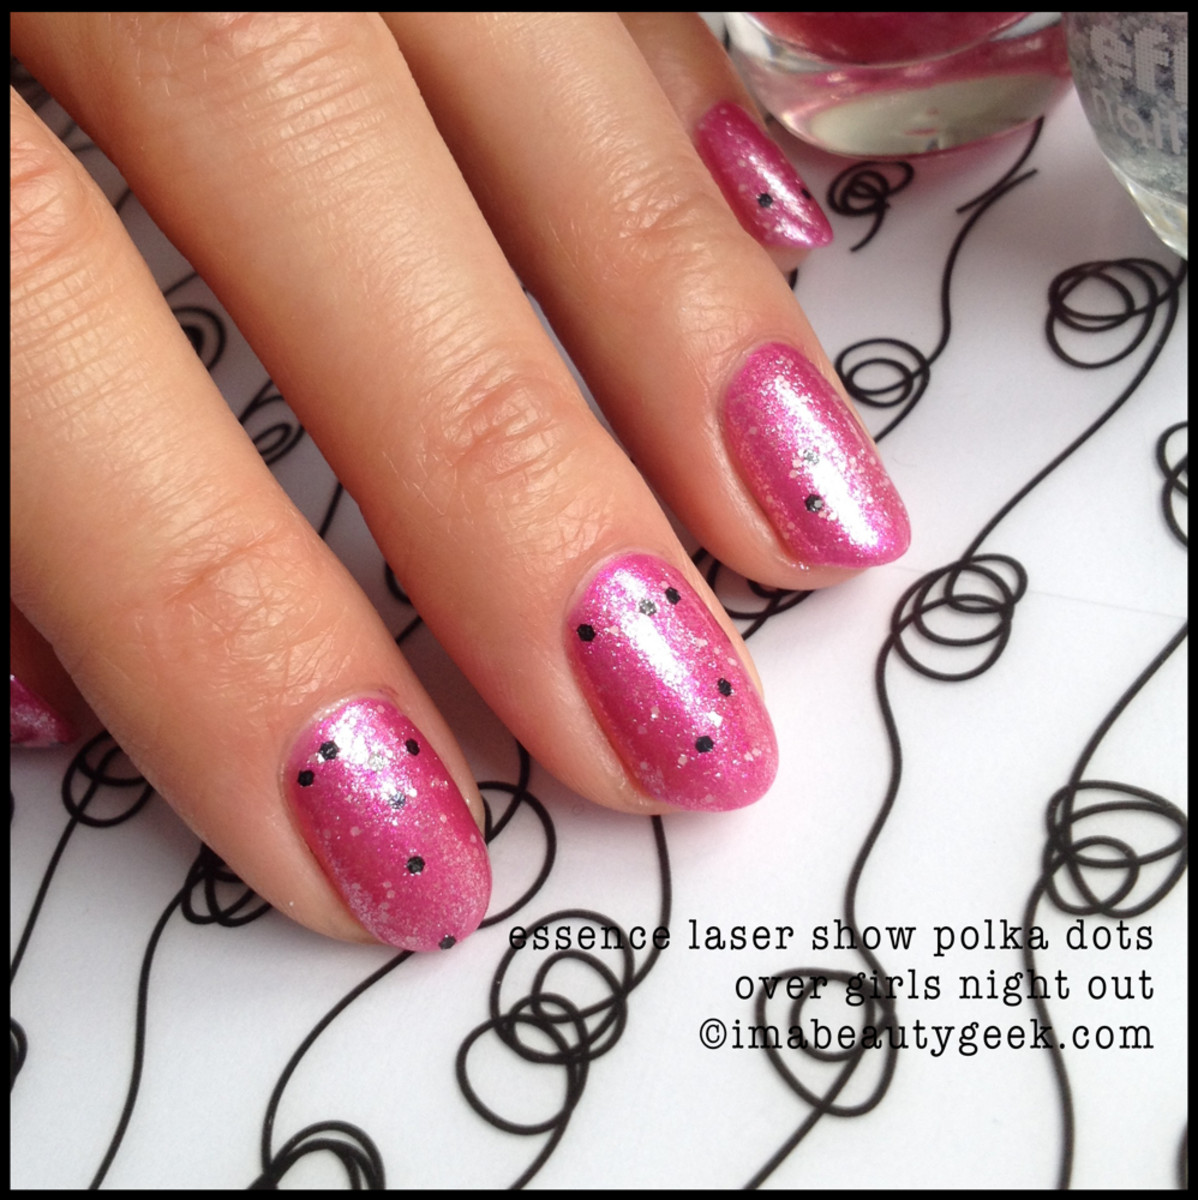 Essence Polish Laser Show Polka Dots over Girls Night Out